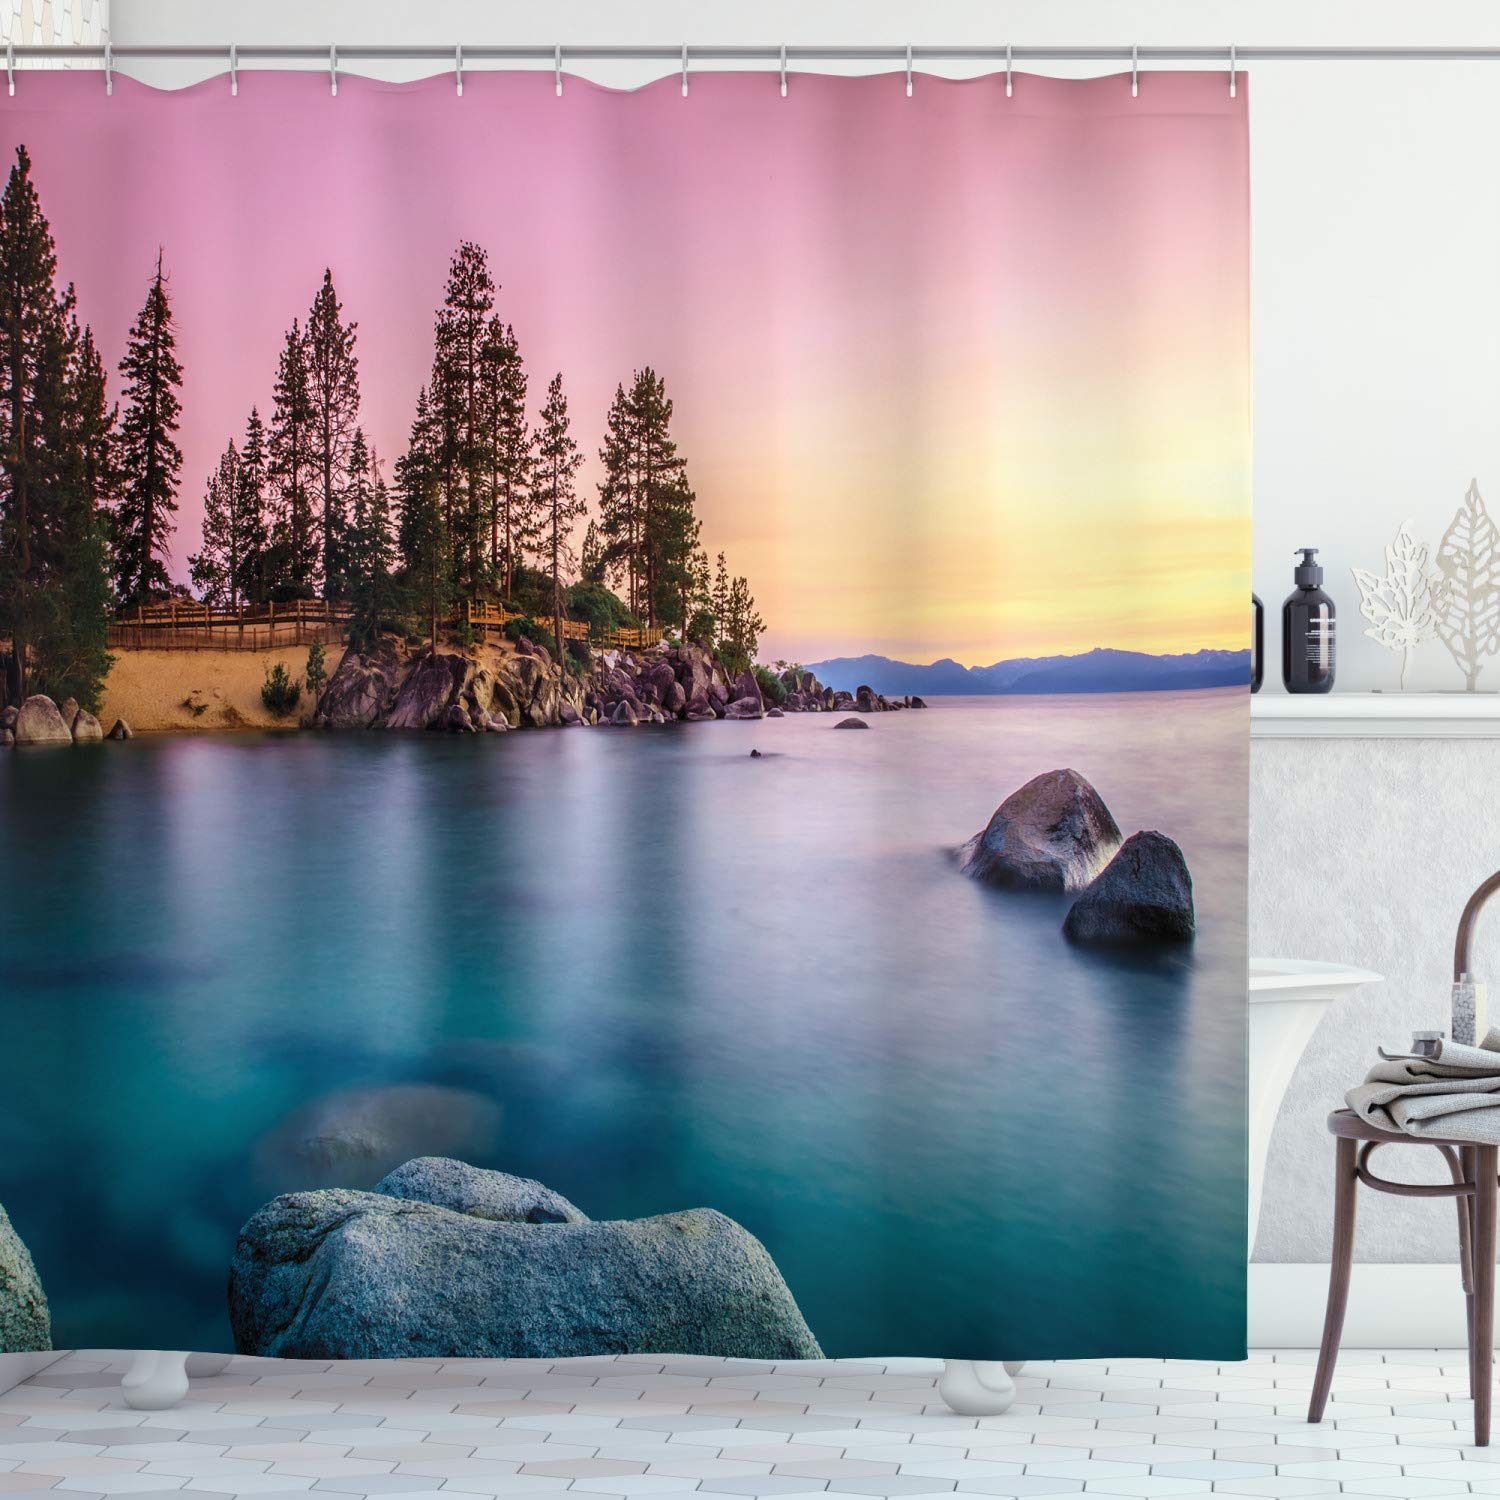 """Ambesonne Lake Shower Curtain, Trees on The Alley and Stones in The Lake Motivational Nature Inspired Tranquil Serene, Cloth Fabric Bathroom Decor Set with Hooks, 84"""" Long Extra, Pink Blue"""